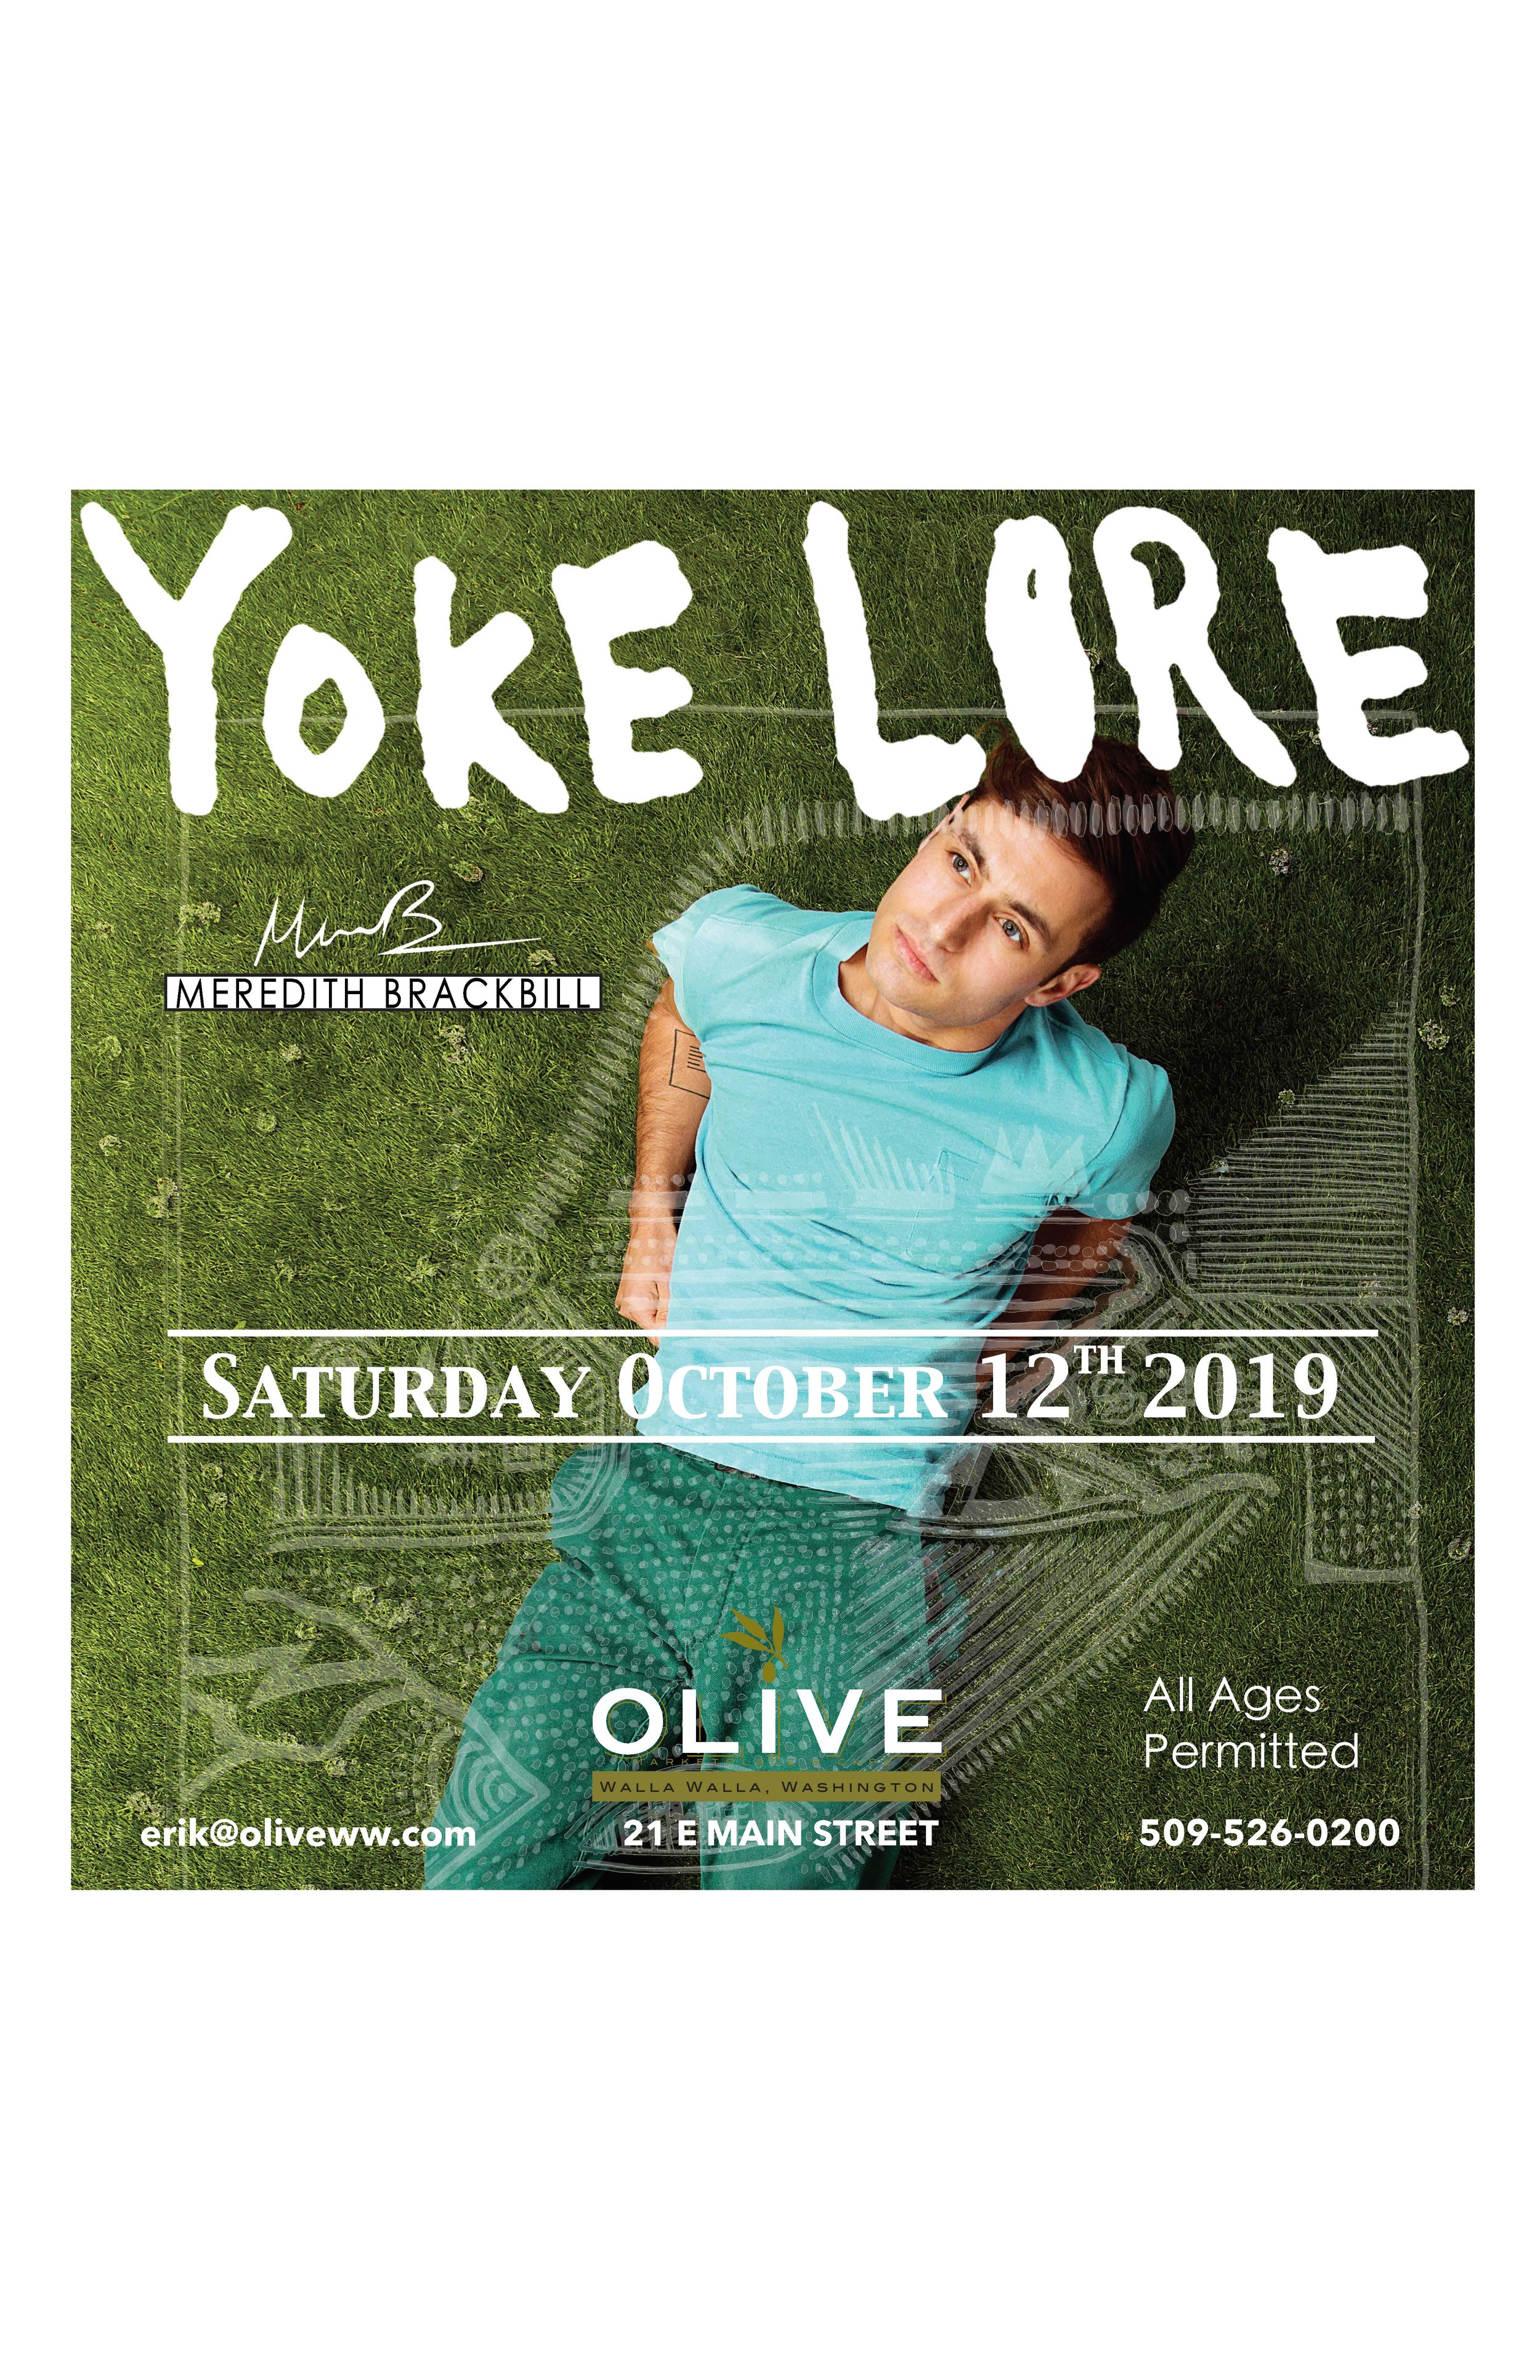 CONCERT!                                 YOKE LORE live at Olive - Join us Saturday October 12th, yep that's this Saturday. Down town Walla Walla. These will go fast! Vip tables available: erik@oliveww.com - Opening for YOKE LORE will be Tennessee transplant , now Walla Walla local , Meredith Brackbill.